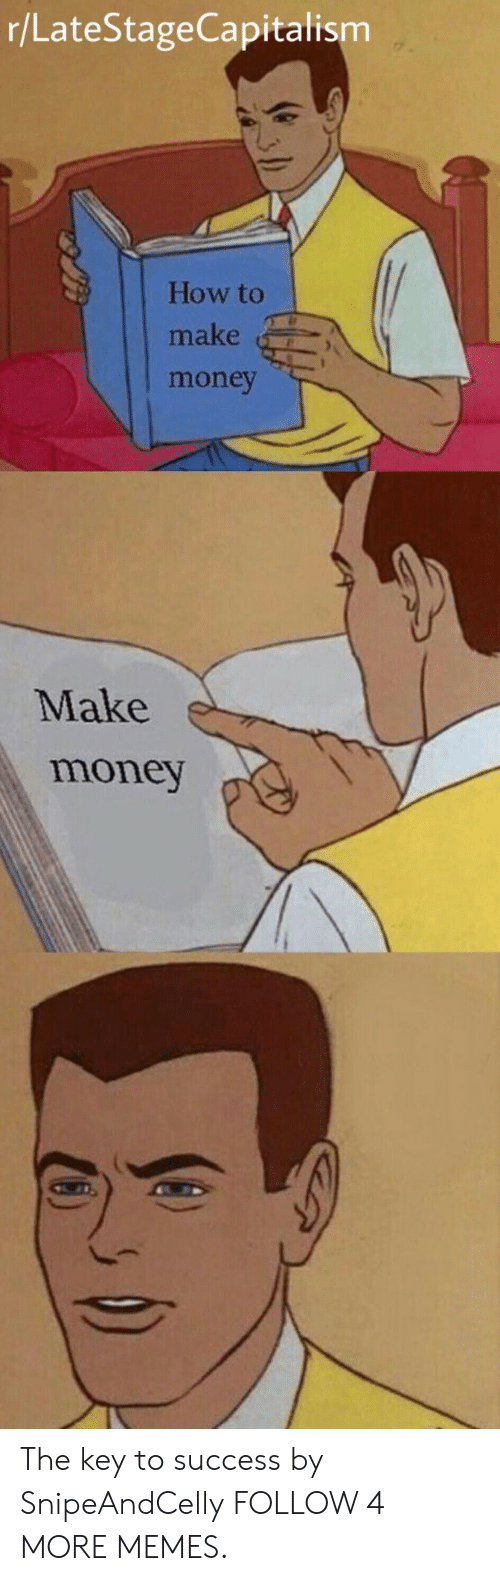 key to success: r/LateStageCapitalism  How to  make  money  Make  money The key to success by SnipeAndCelly FOLLOW 4 MORE MEMES.